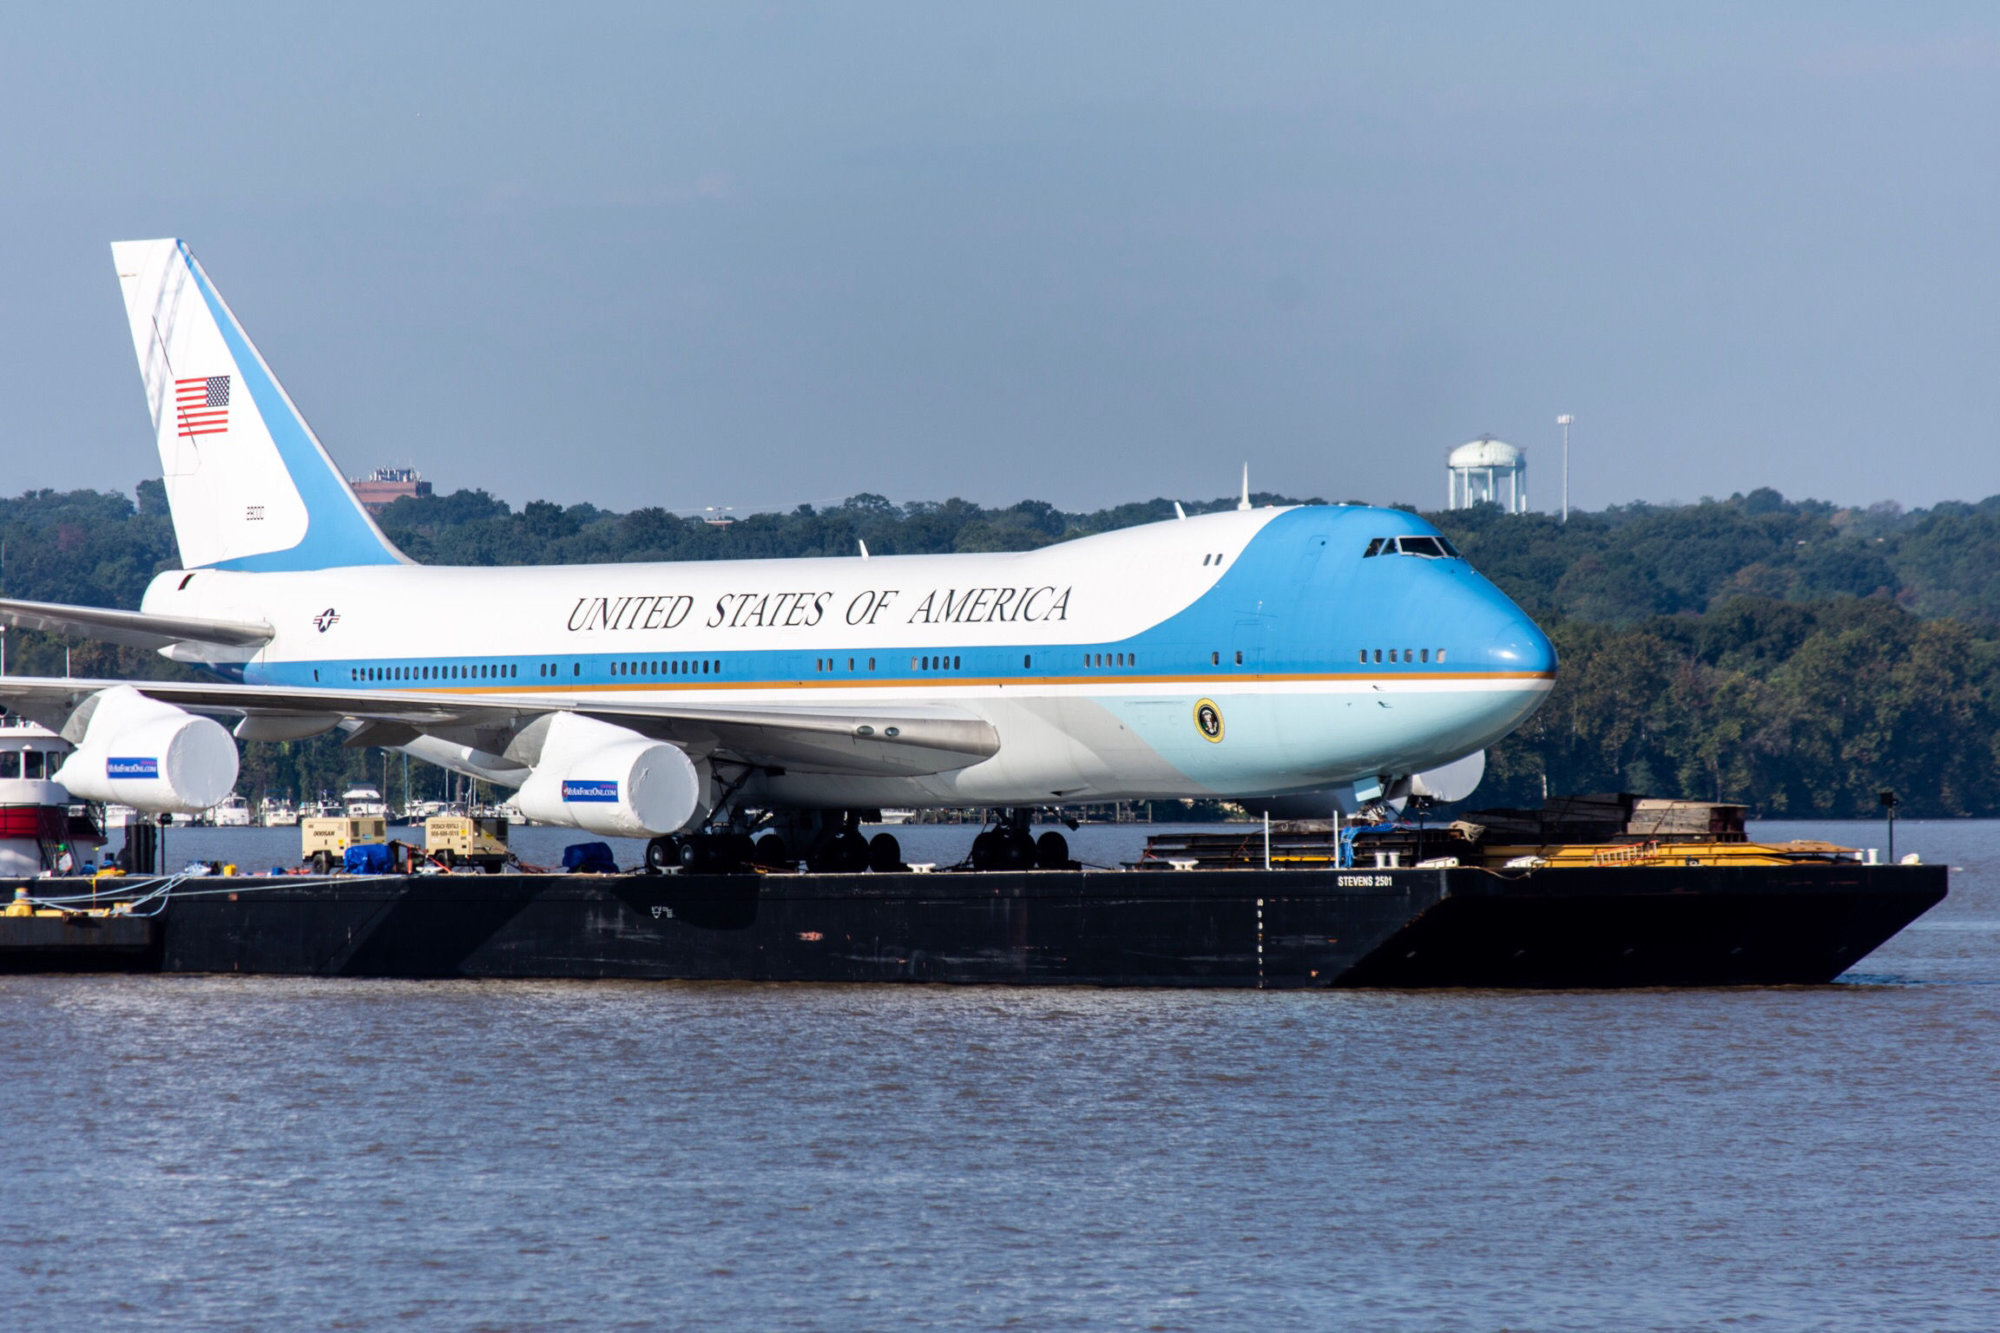 Air Force One Experience At National Harbor Gives Glimpse Into